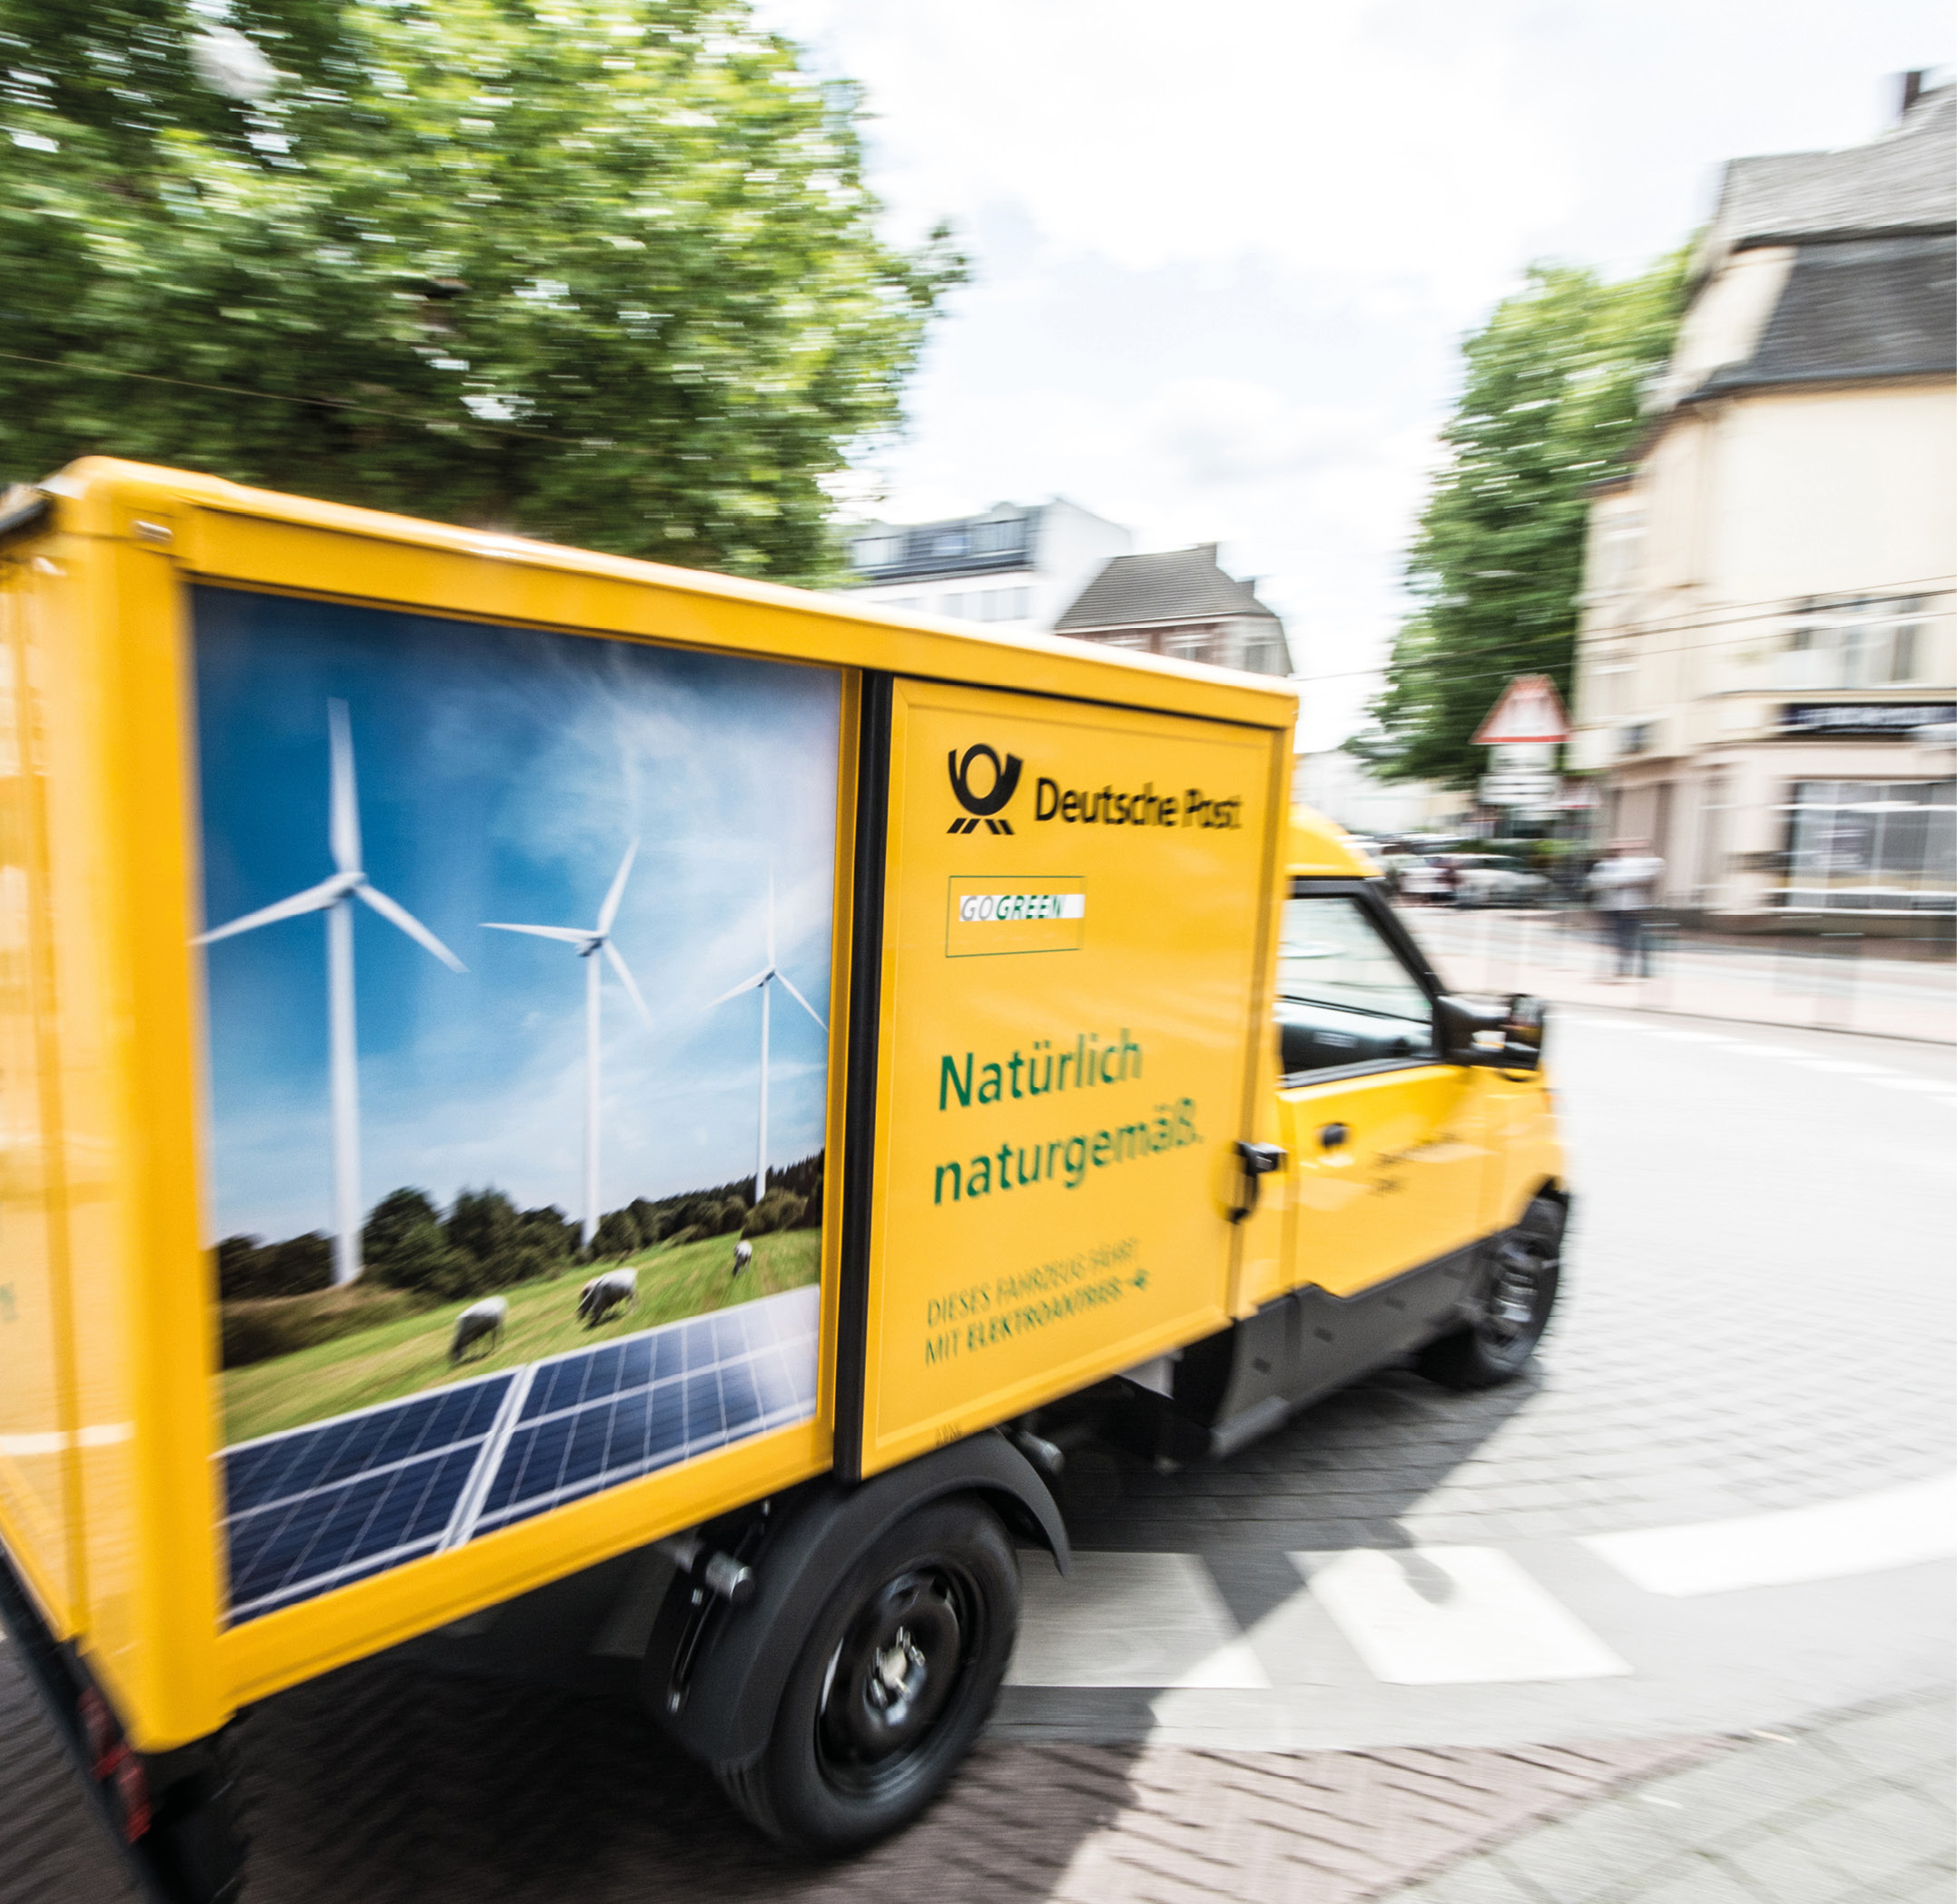 Electric vehicle of Deutsche Post DHL